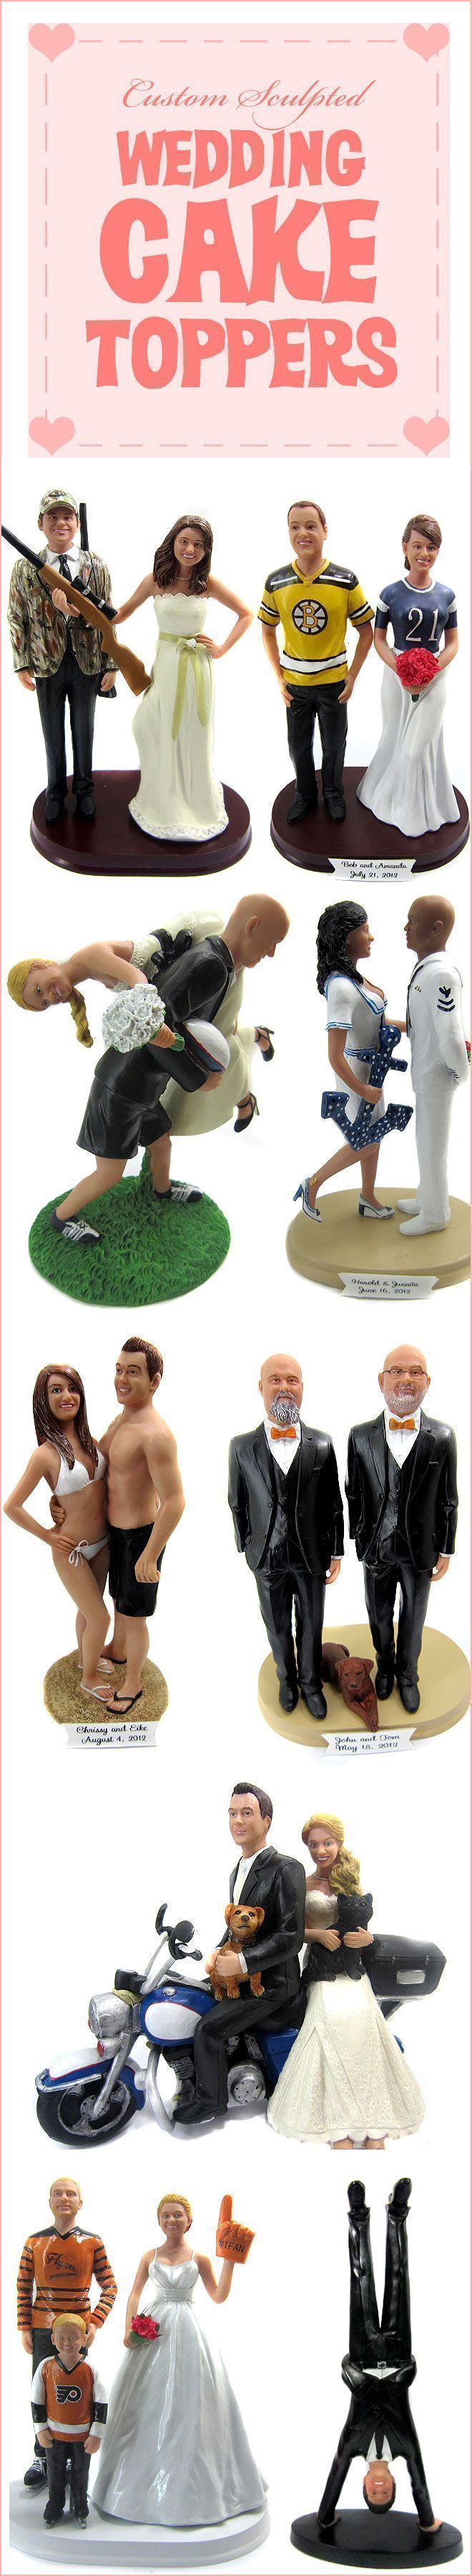 wedding cake toppers that look like bride and groom 1000 images about custom cake toppers on 26608